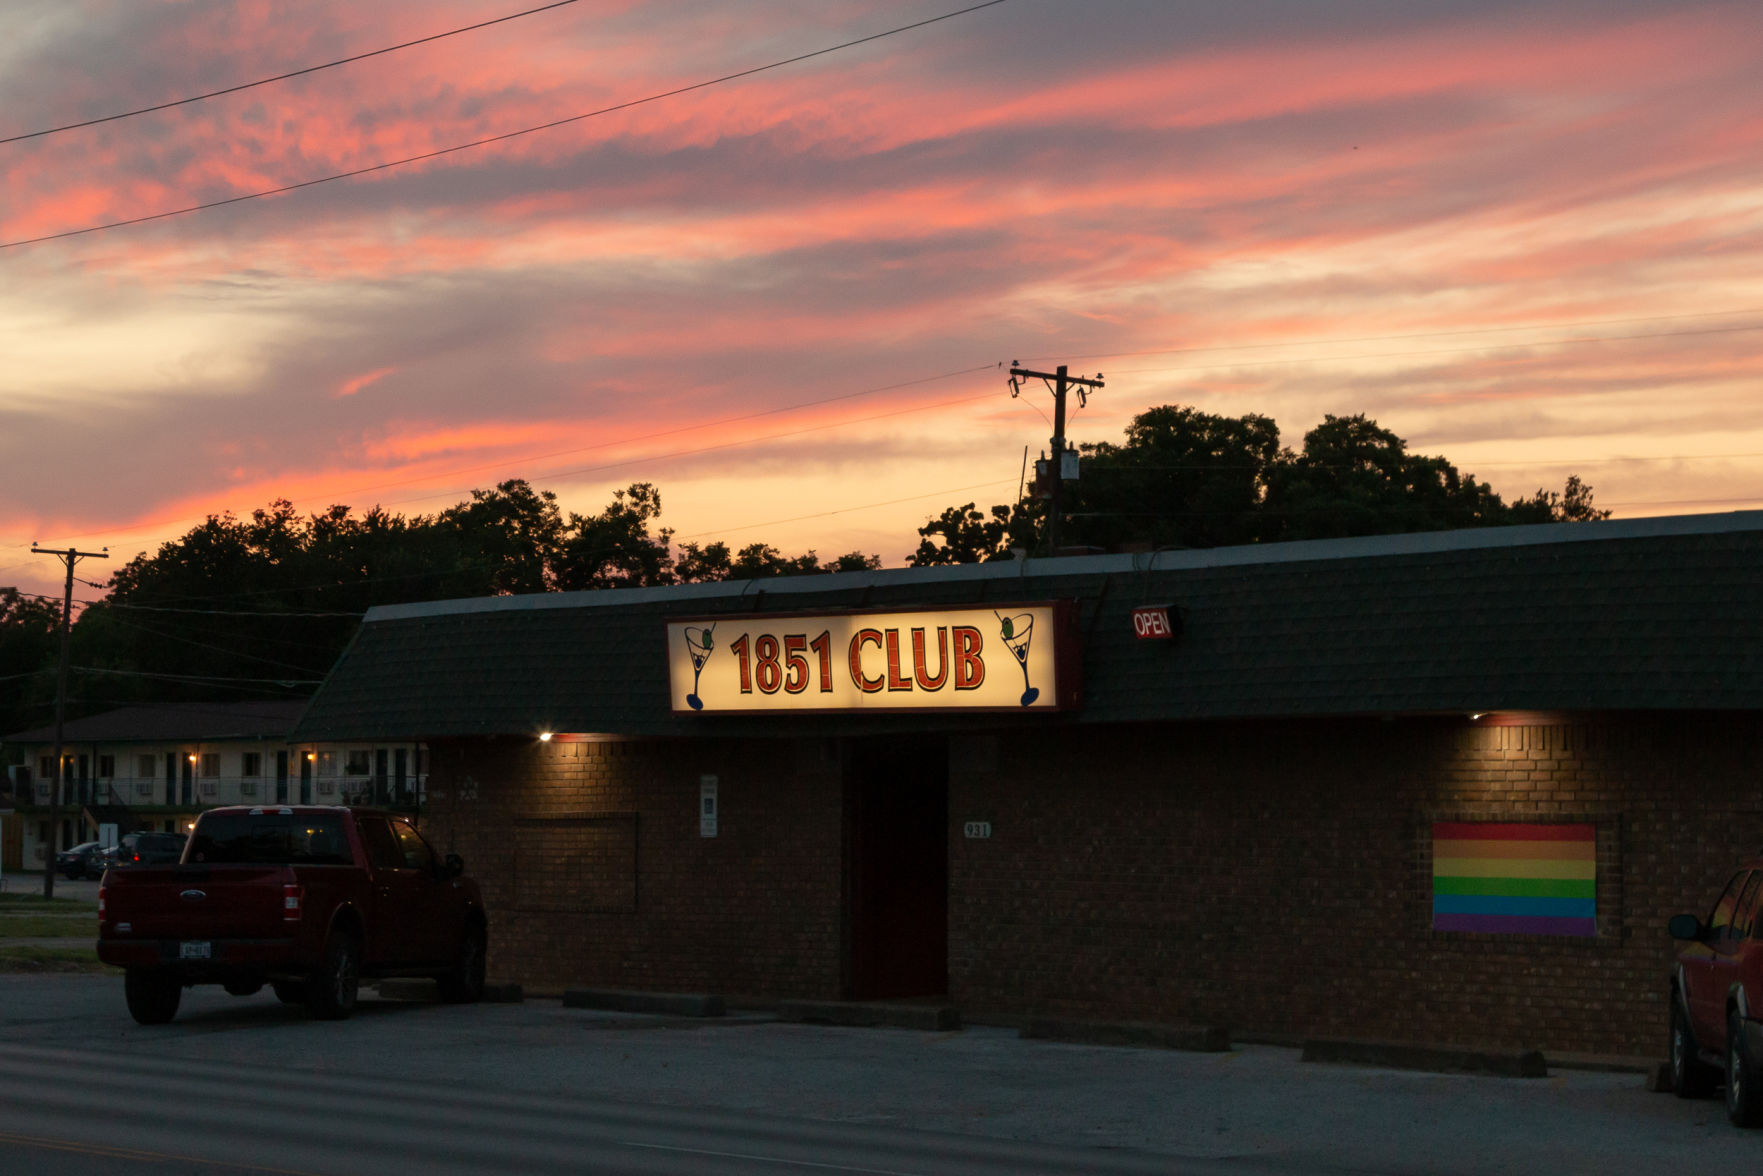 1851 Club Arlington serves as local destination, haven for LGBTQ community